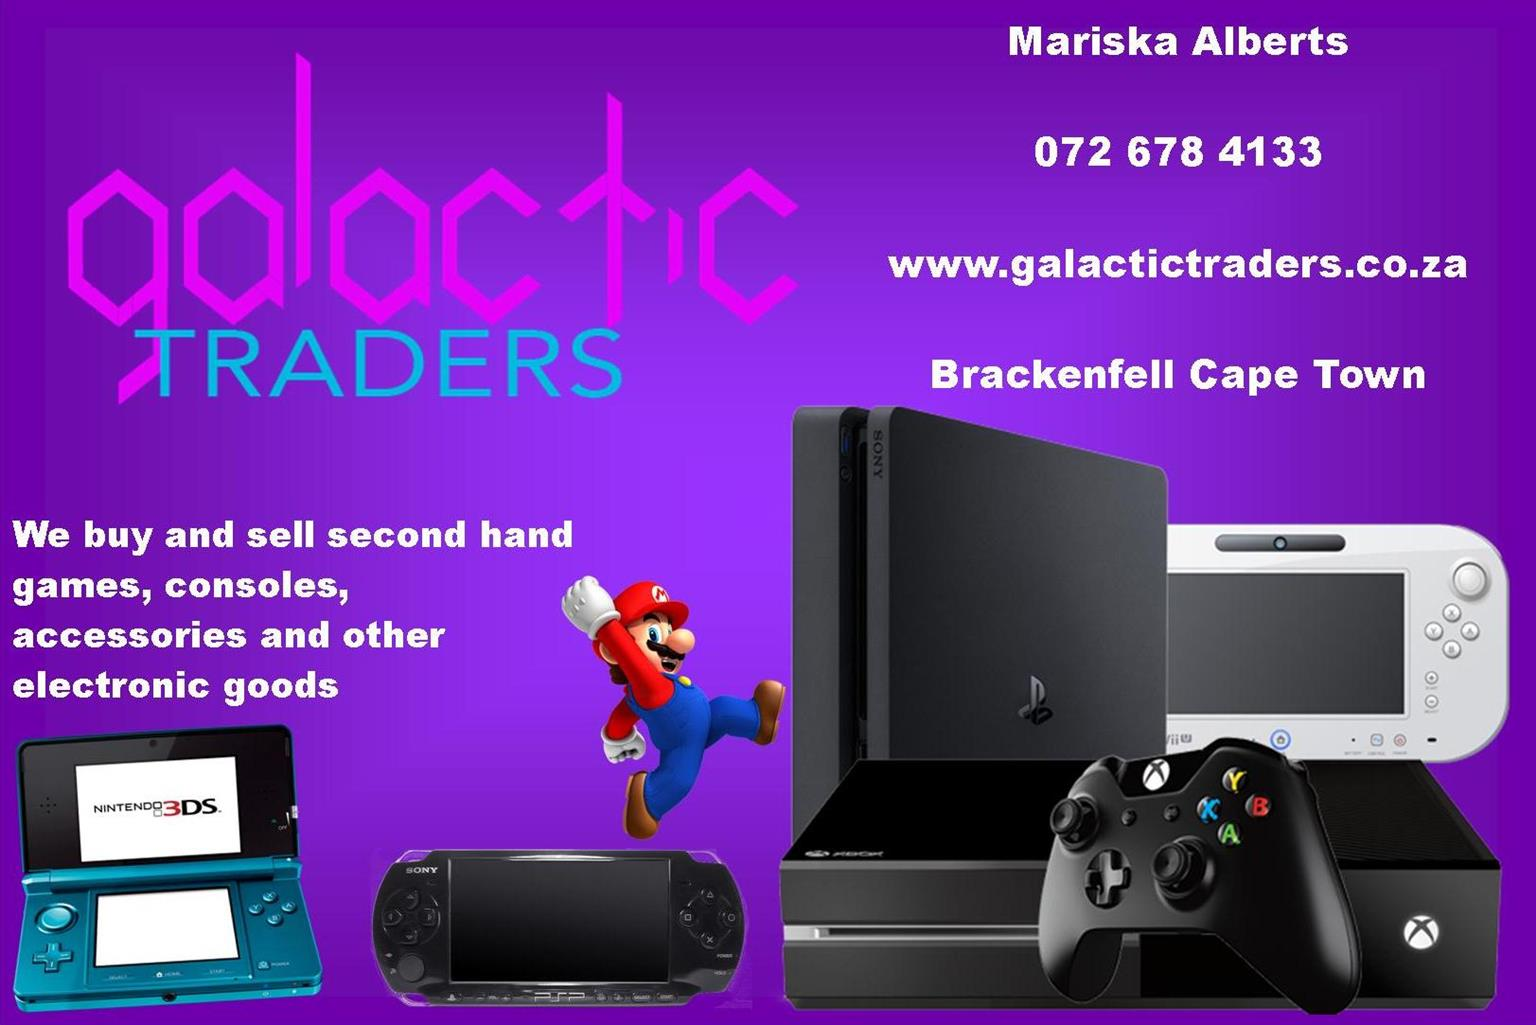 We sell and trade Xbox, Playstation, Nintendo games, consoles and acc